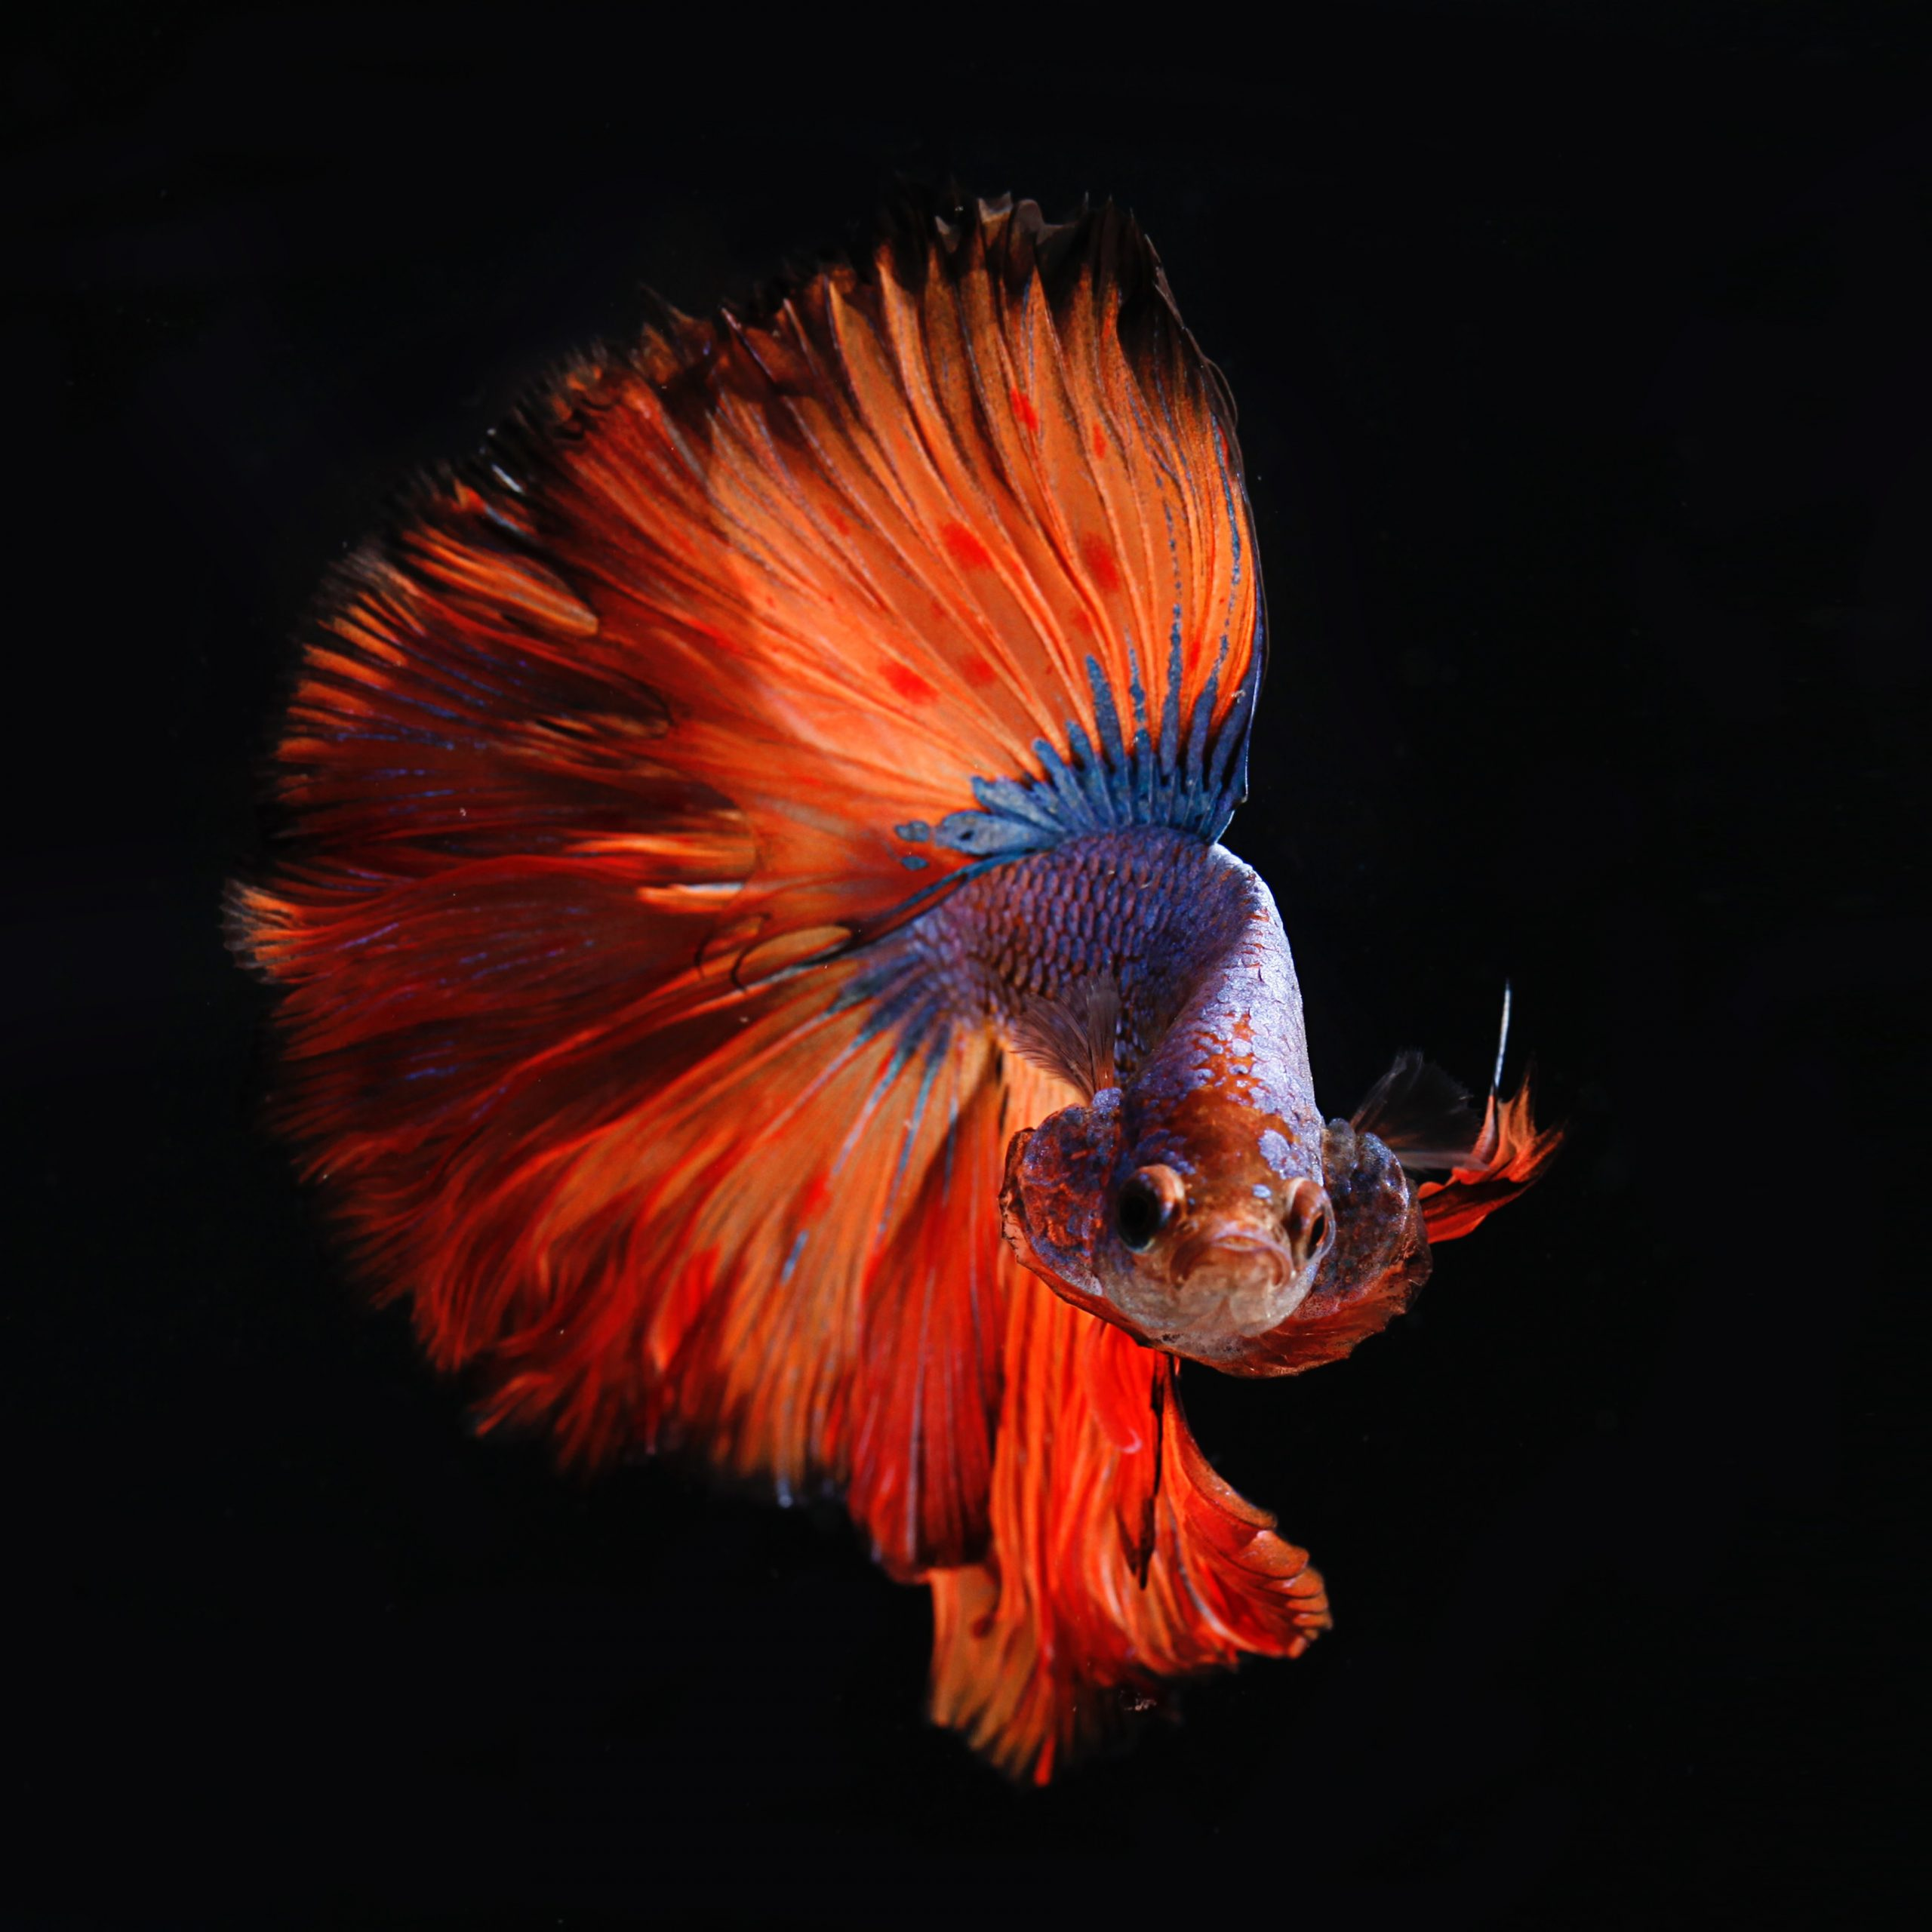 wallpaper Red and silver fighting fish